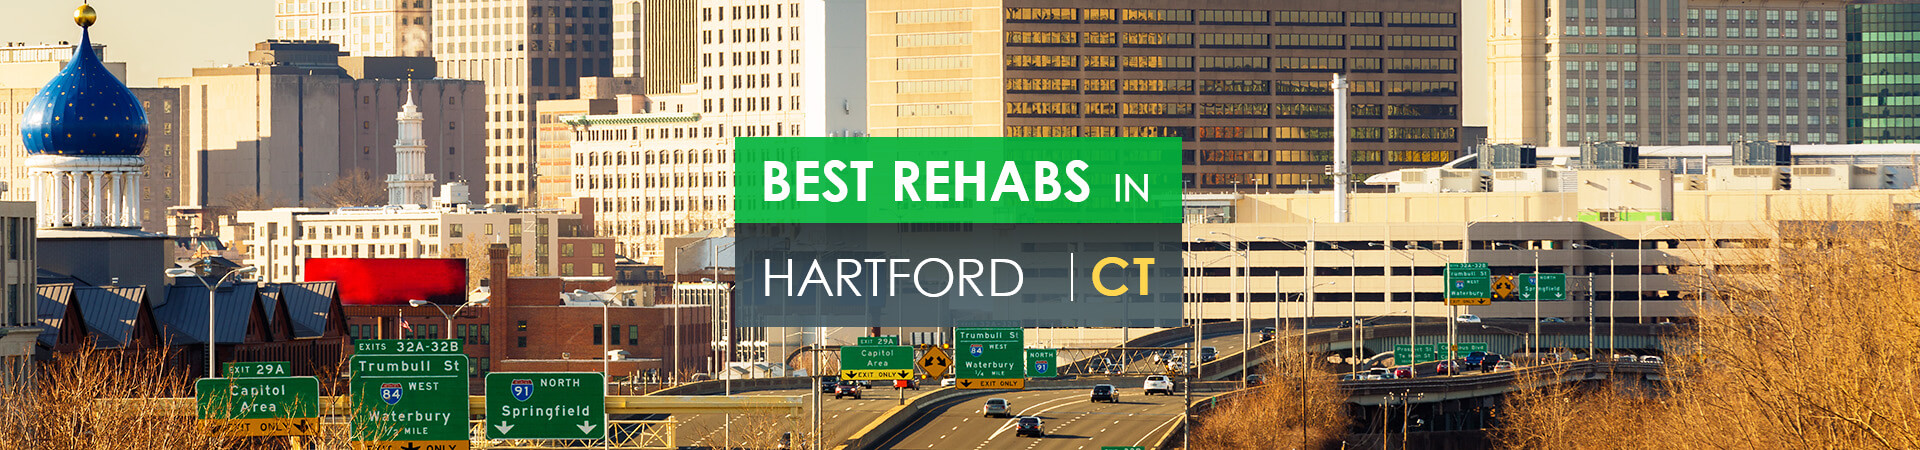 Best rehabs in Hartford, CT